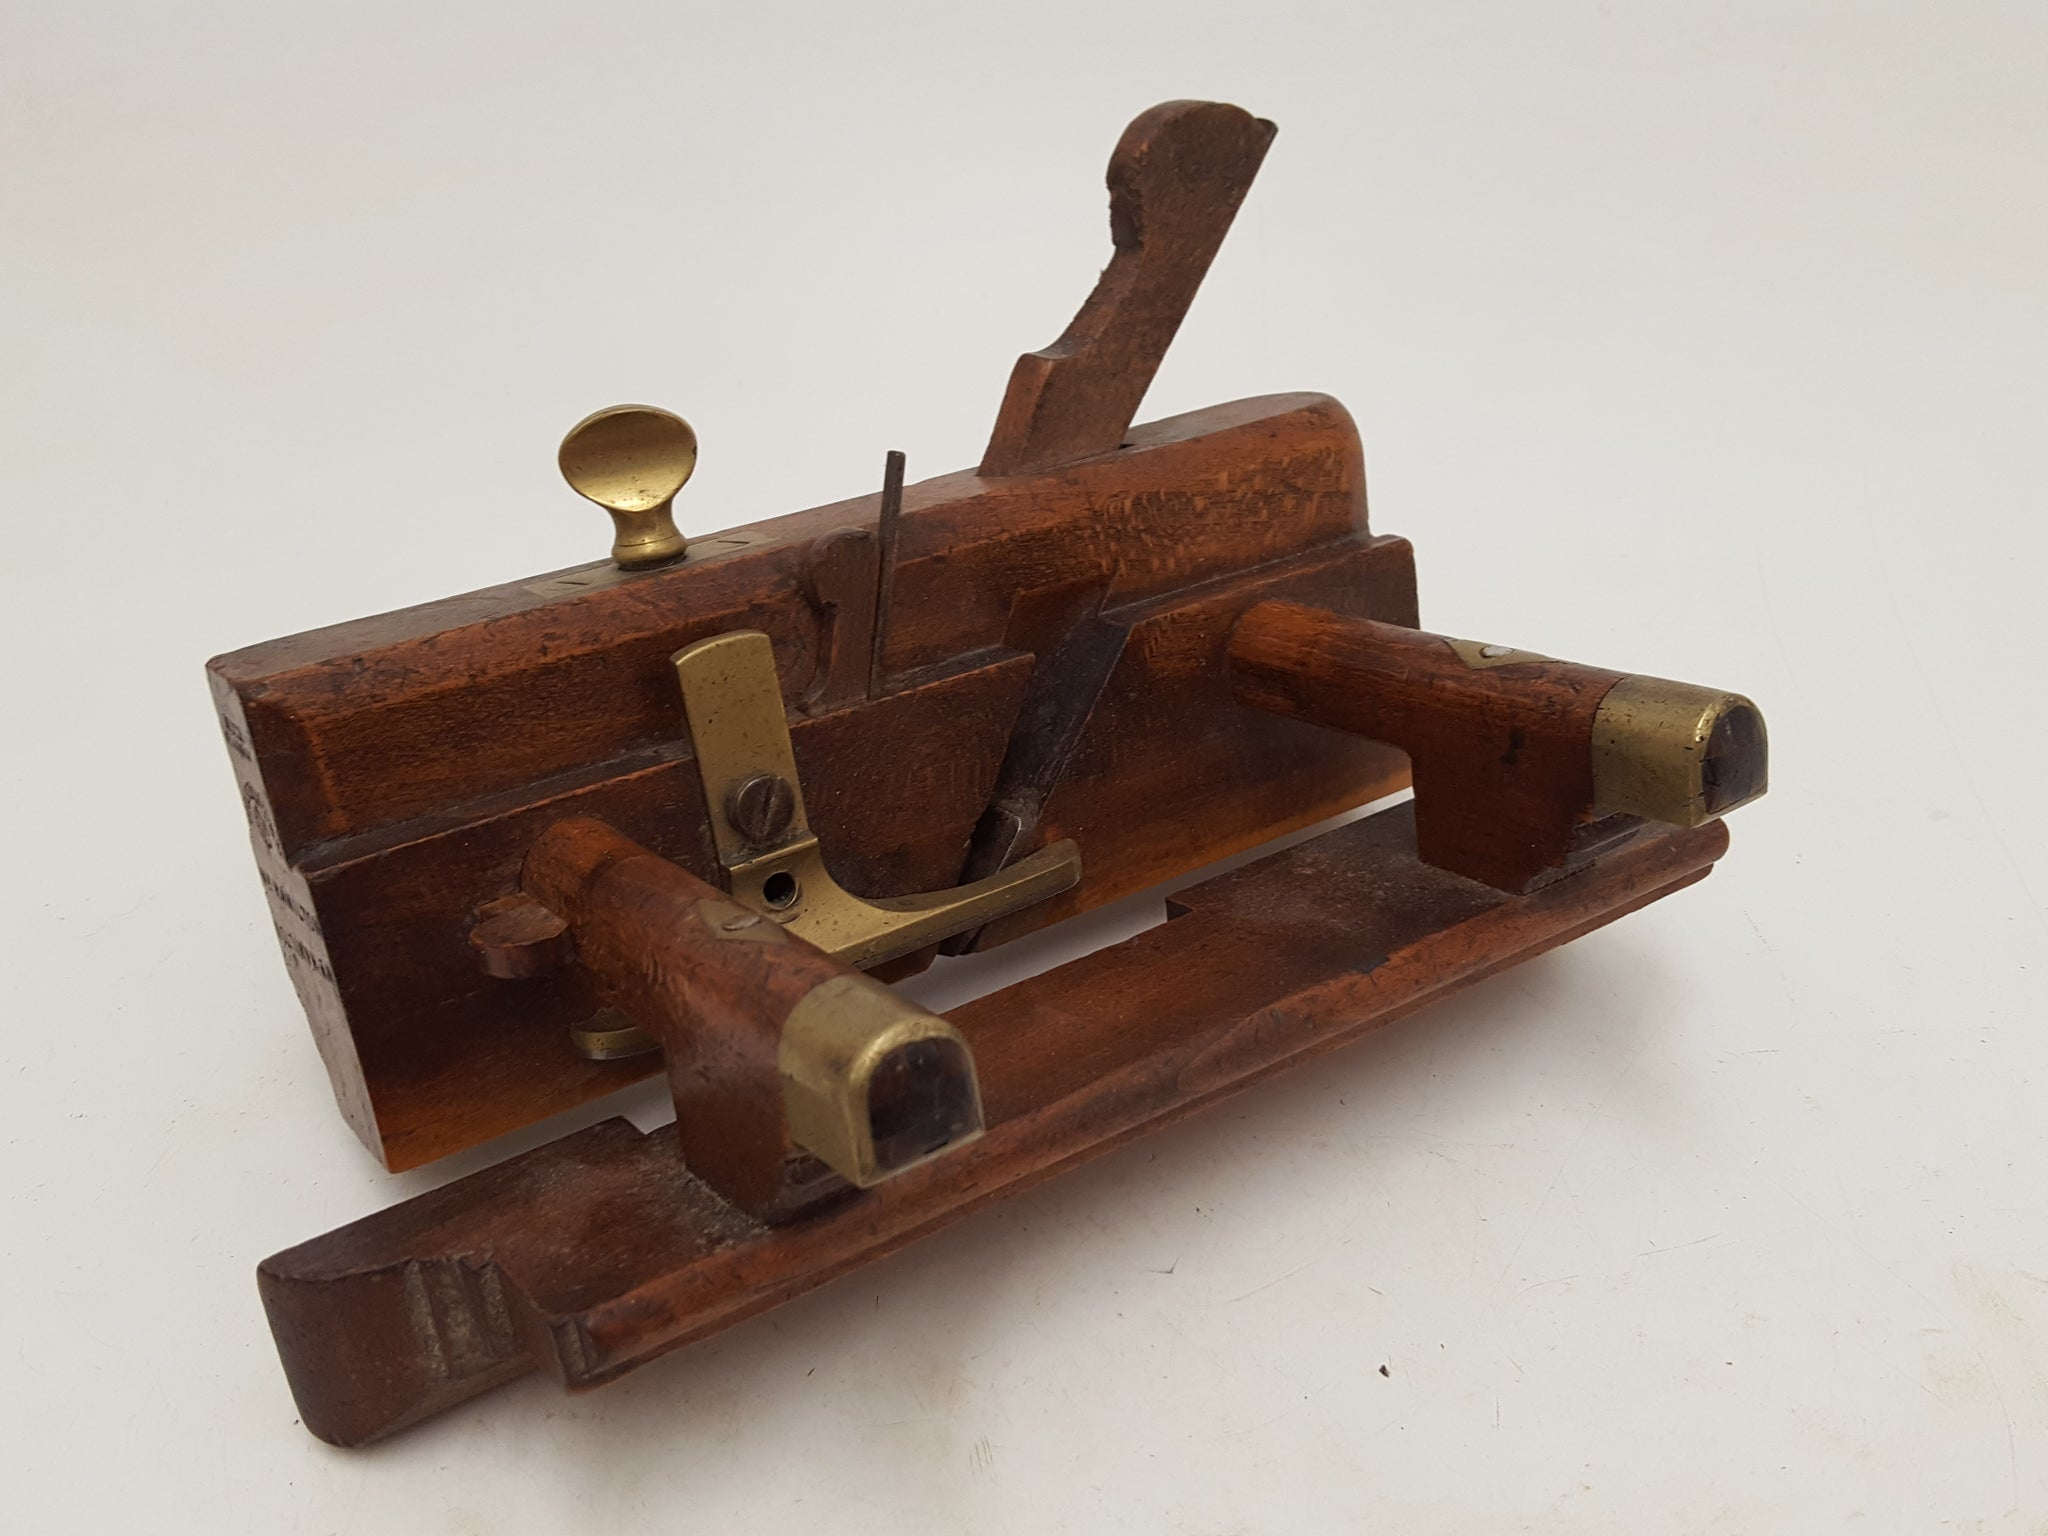 Triple Boxed / Dovetailed Moir Glasgow Sash Fillister Plane 26971